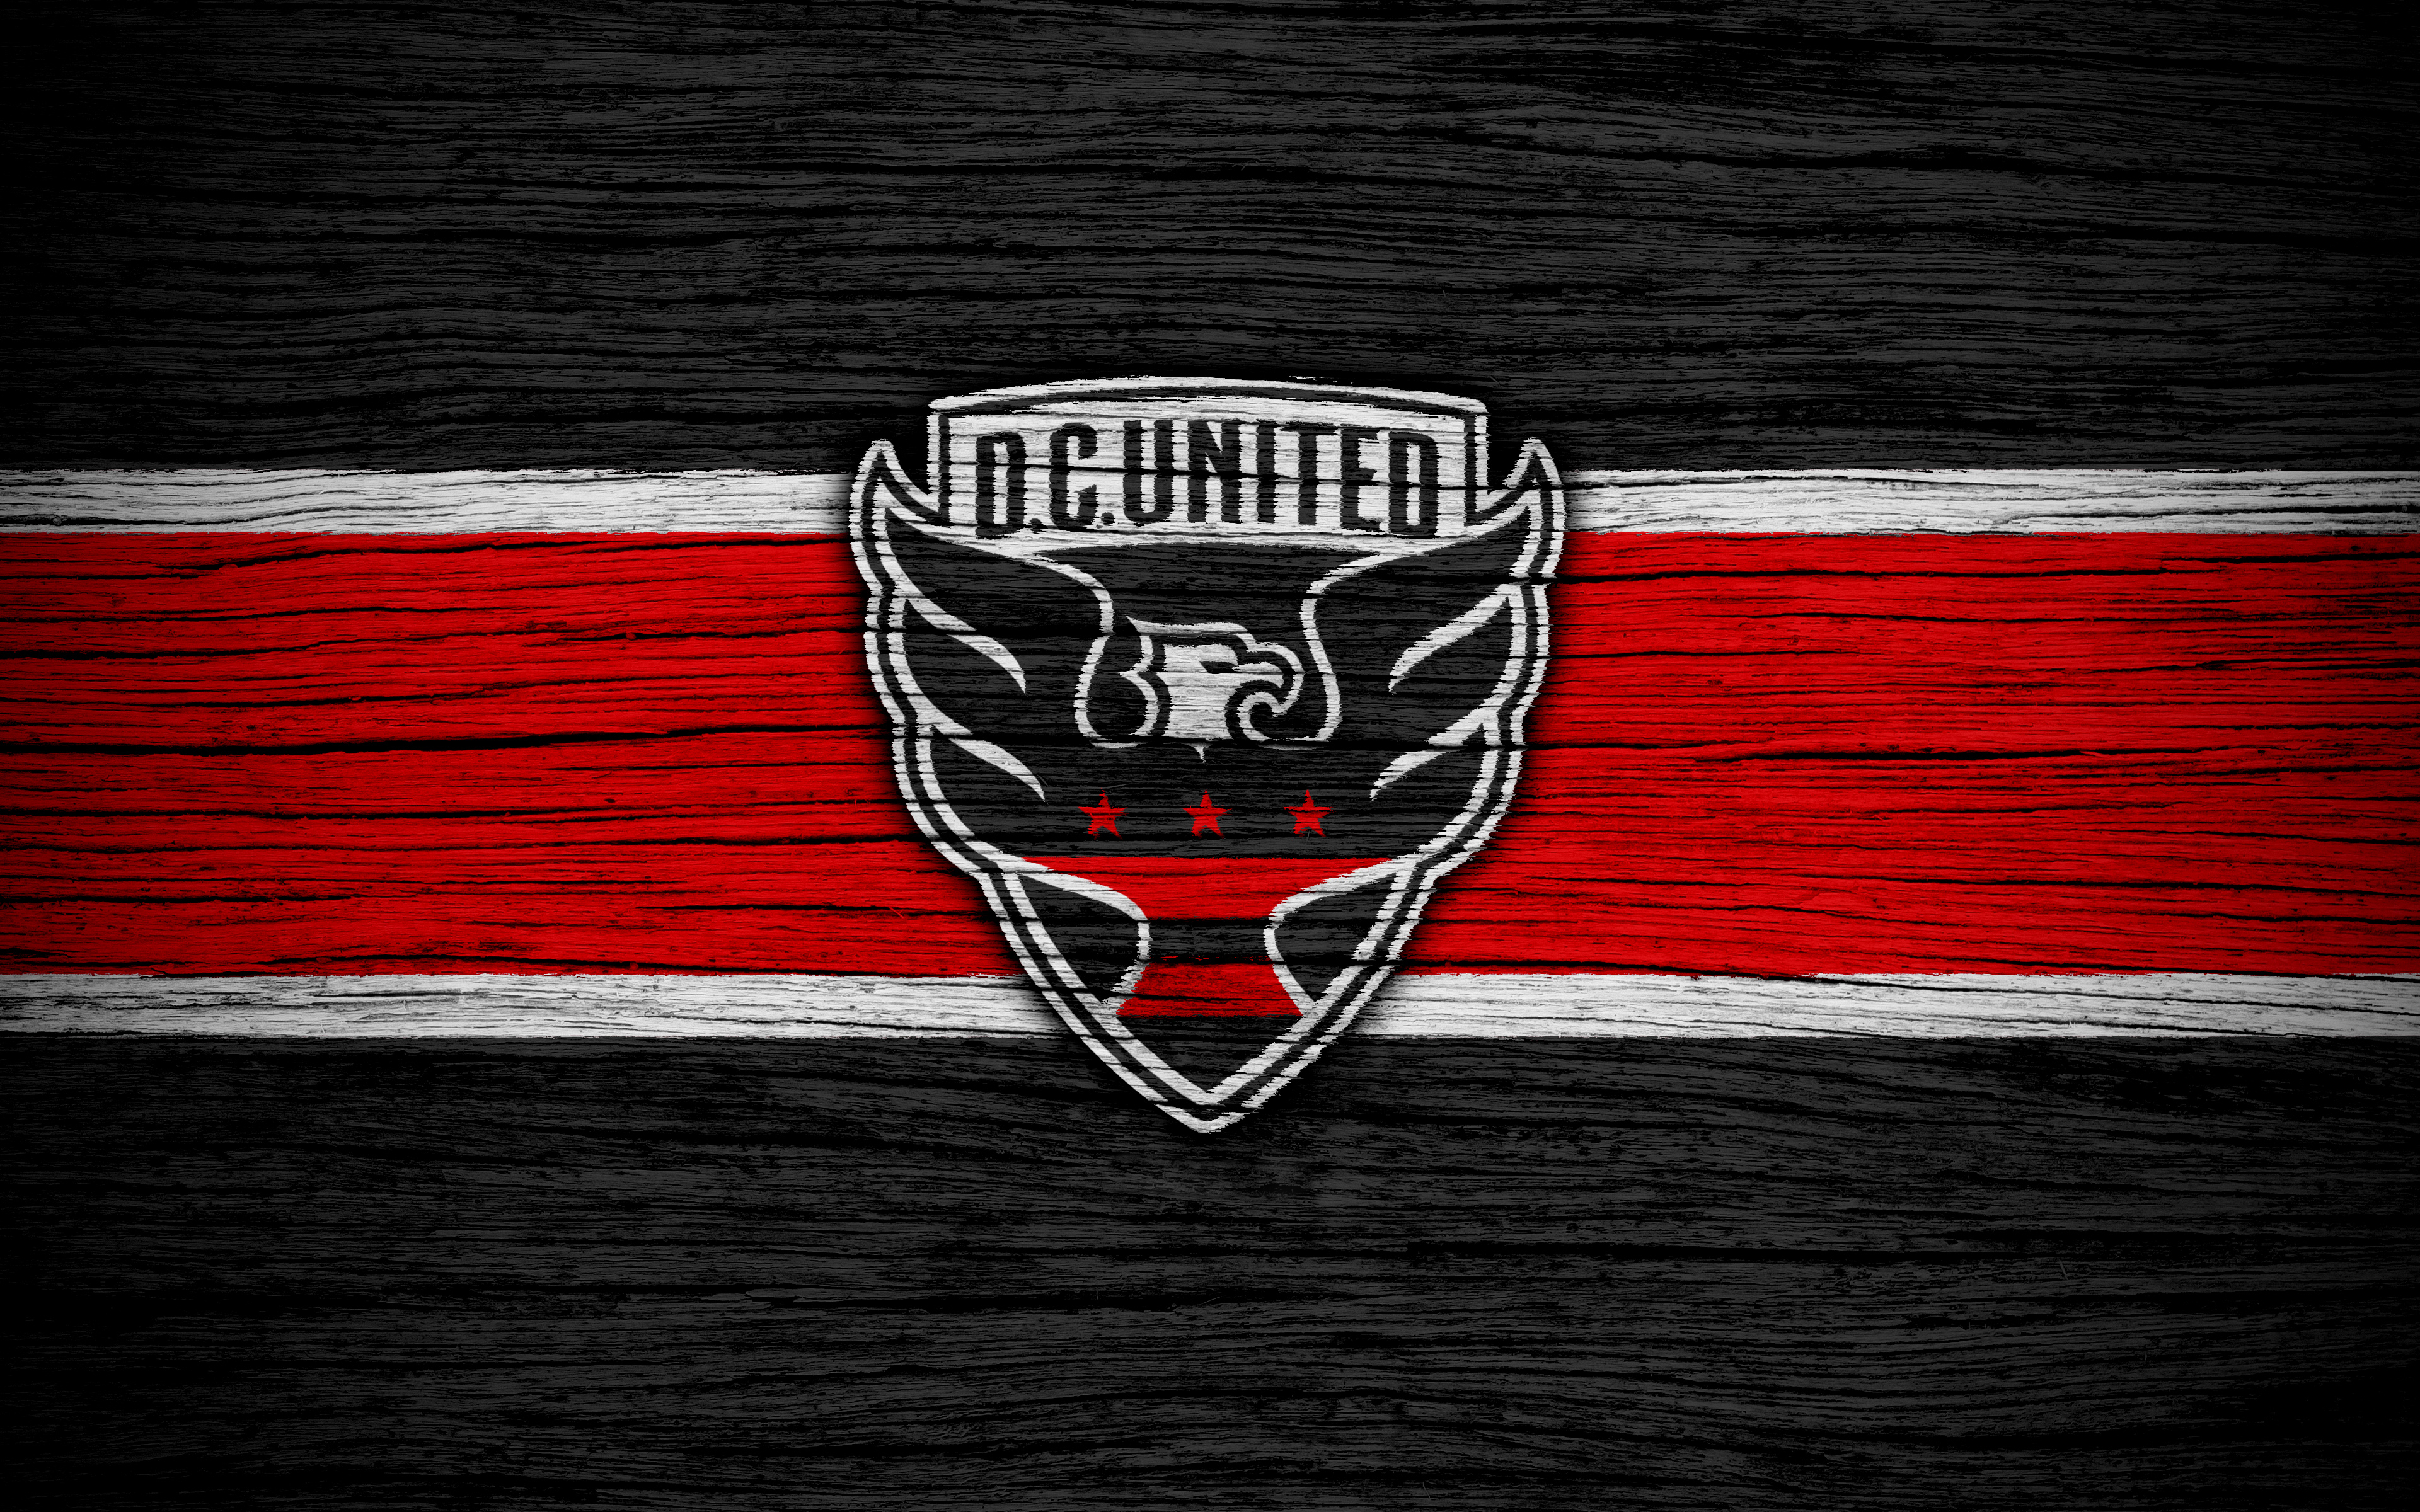 Soccer Emblem MLS Logo DC United wallpaper and background 3840x2400